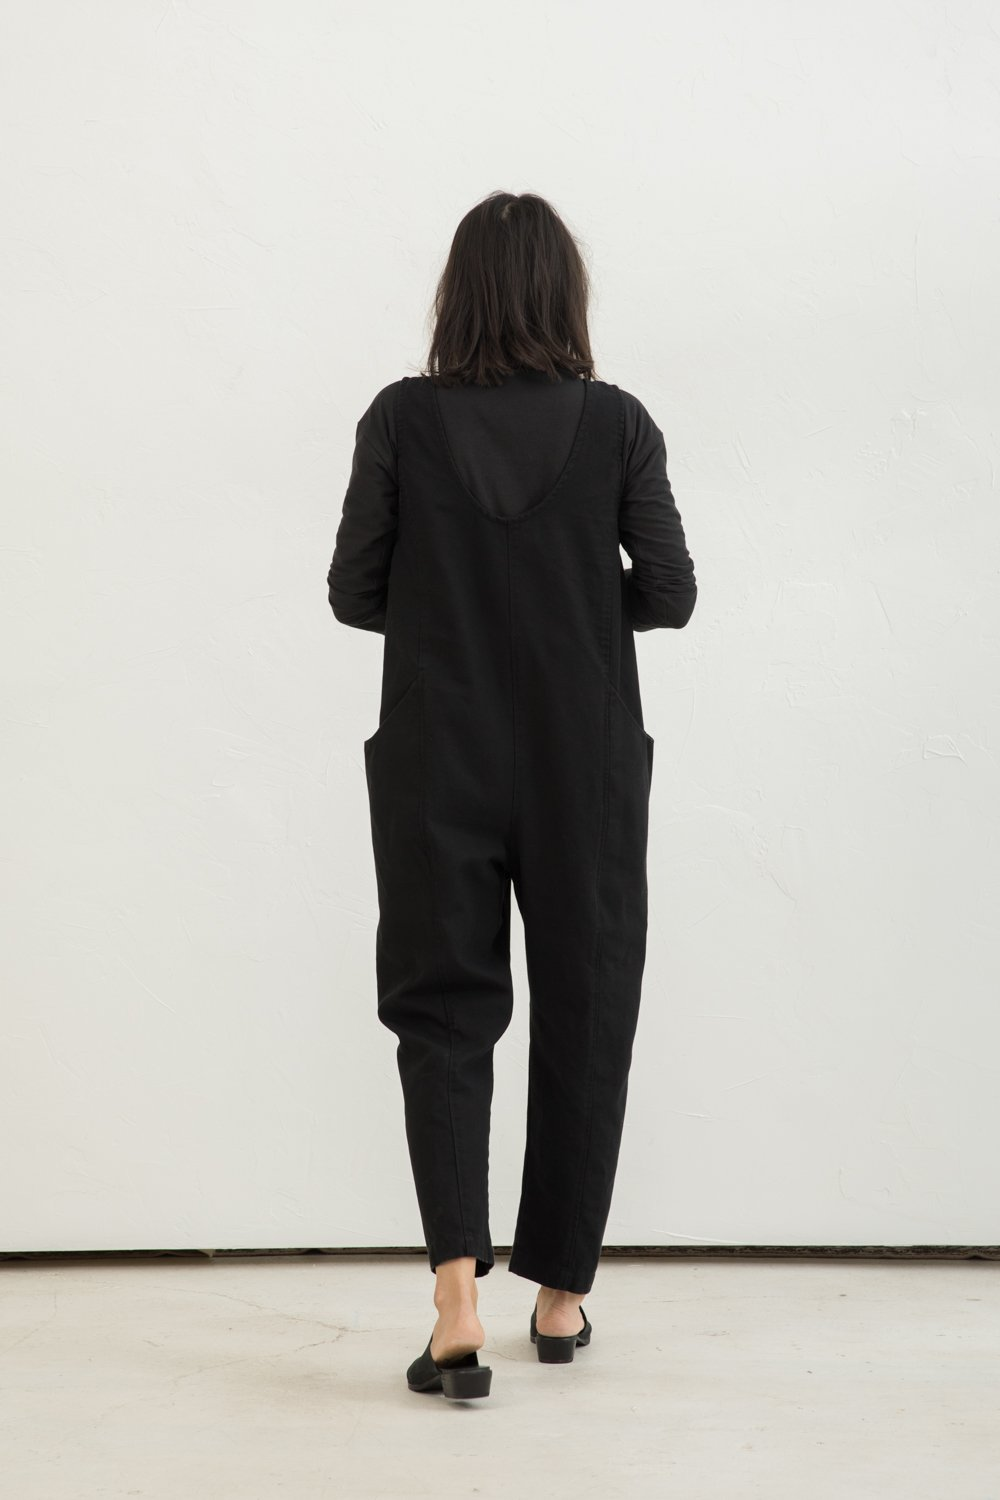 The Clyde Jumpsuit: $275 - from Elizabeth Suzann